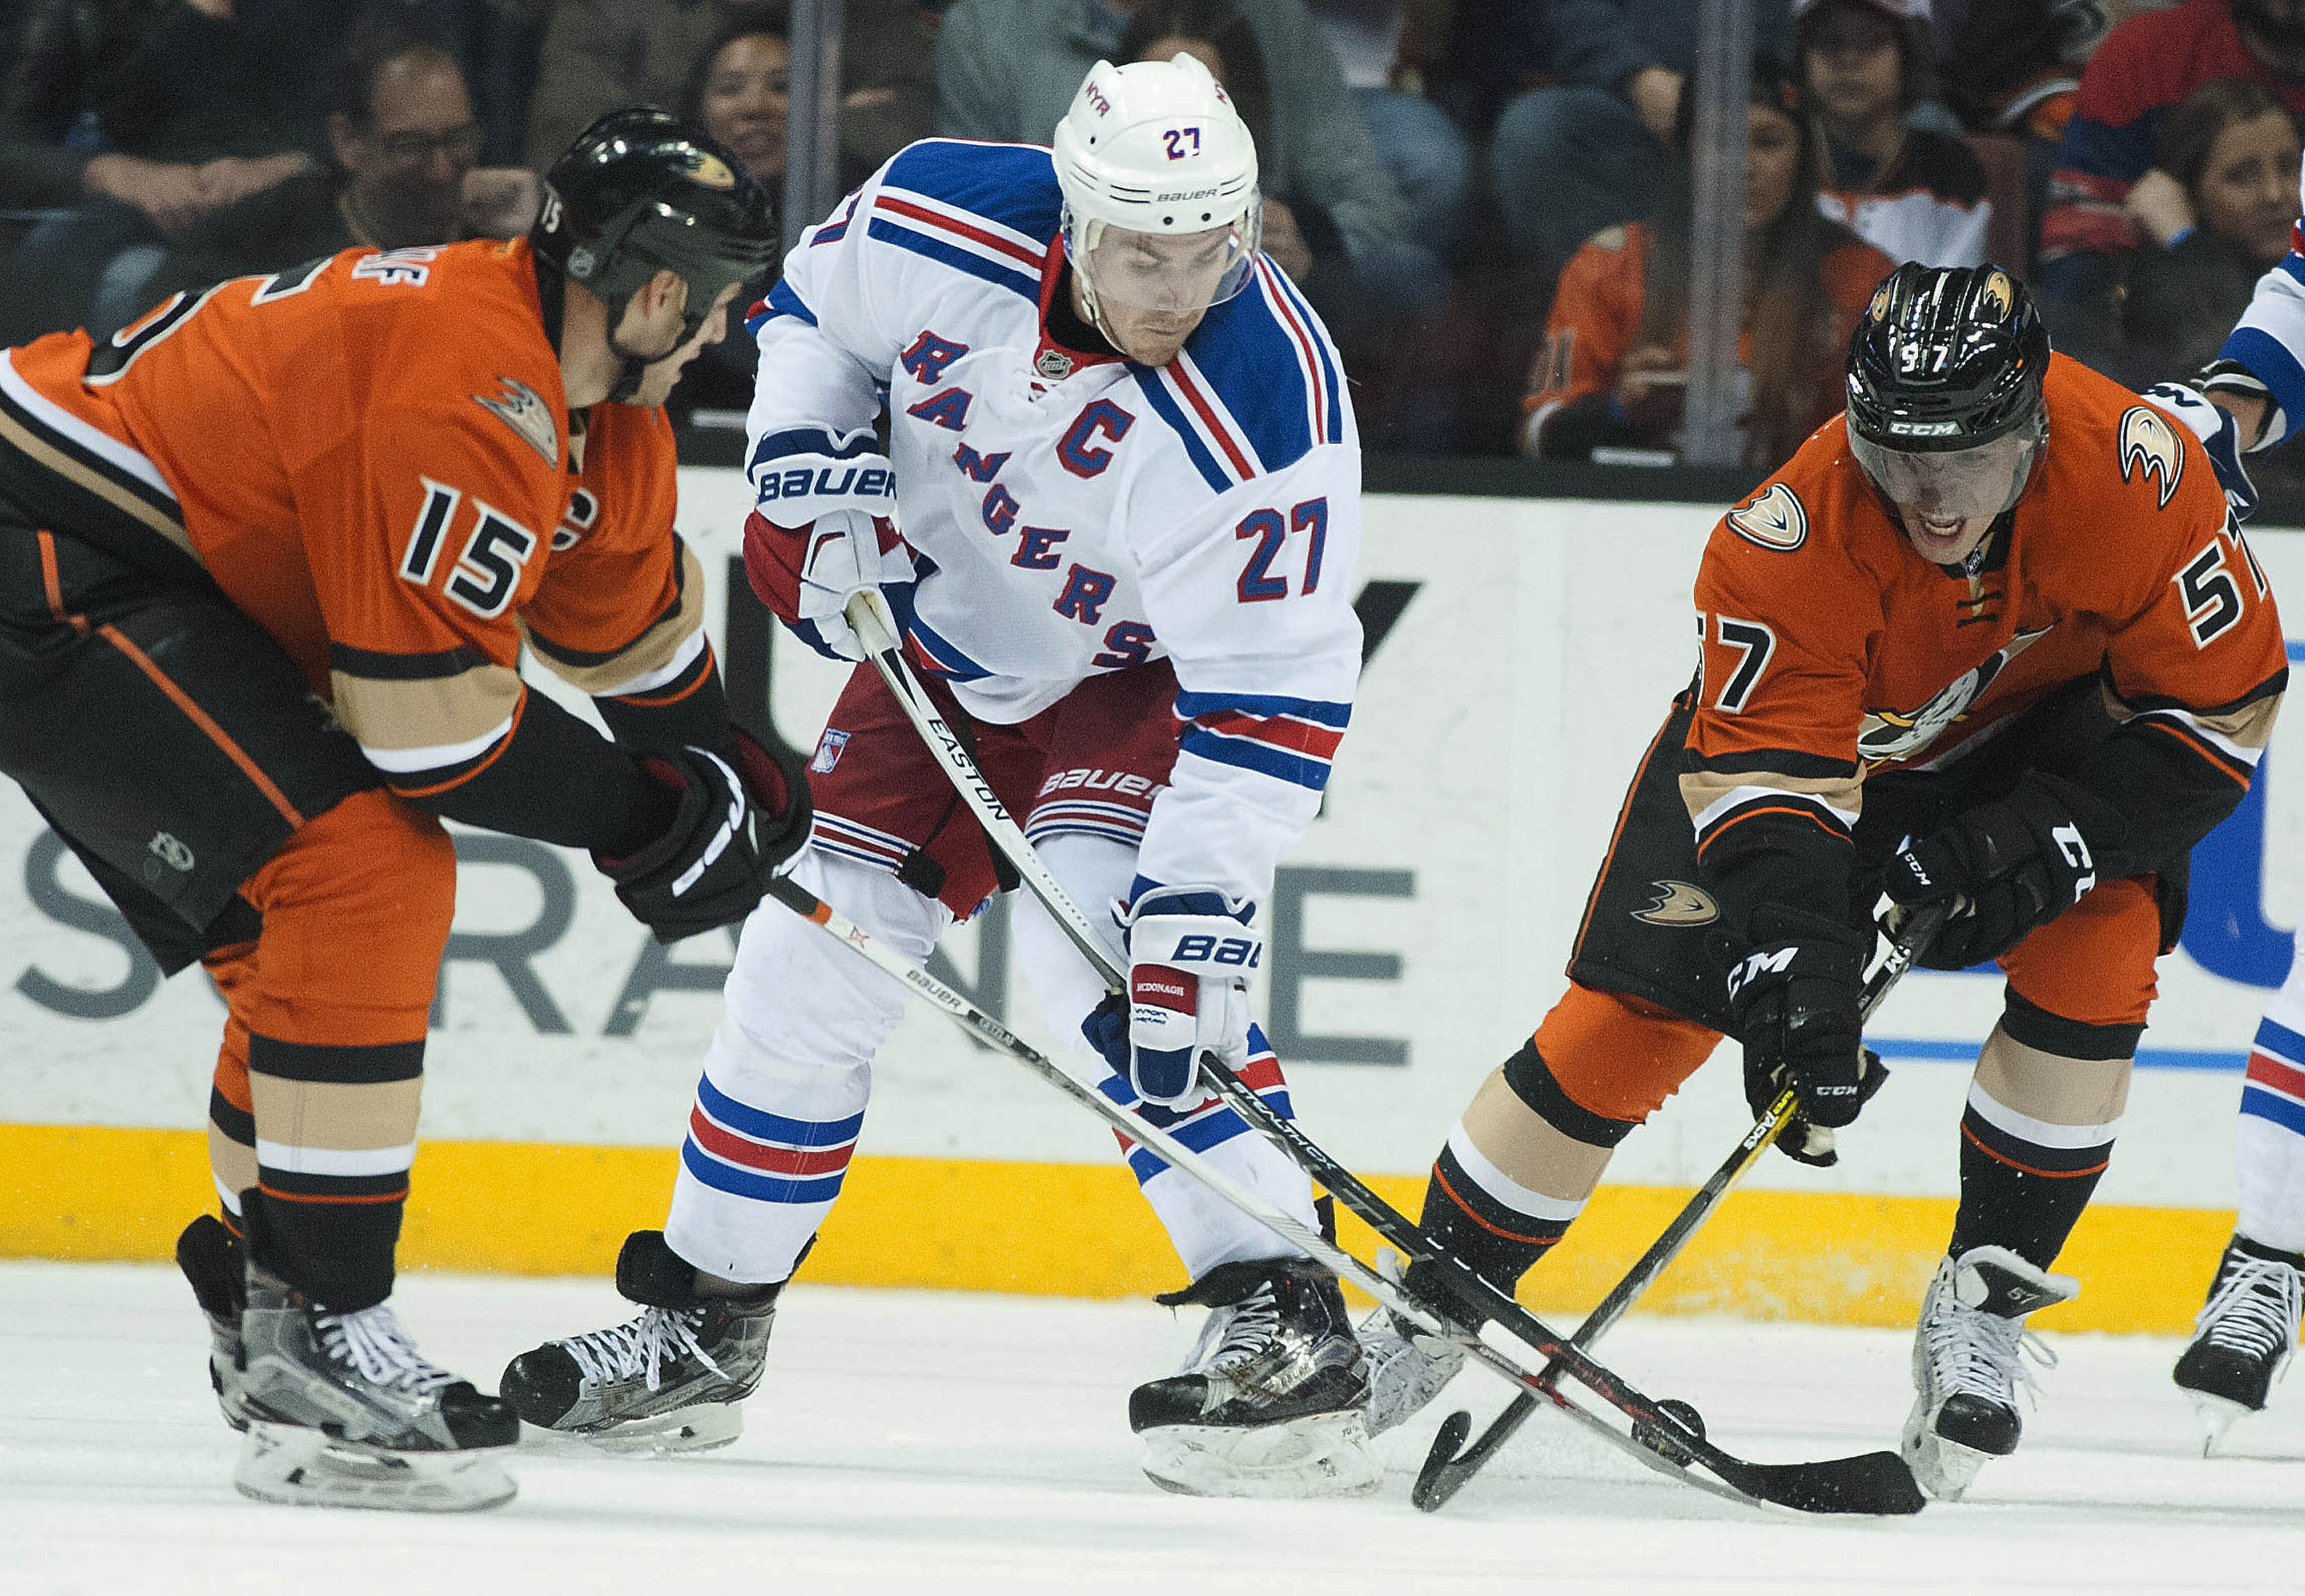 The Ducks' Ryan Getzlaf, left, and David Perron battle the Rangers' Ryan McDonagh for the puck during the second period of their NHL hockey game in Anaheim, Calif., on Wednesday, March 16, 2016. (Kevin Sullivan/The Orange County Register via AP) MANDATORY